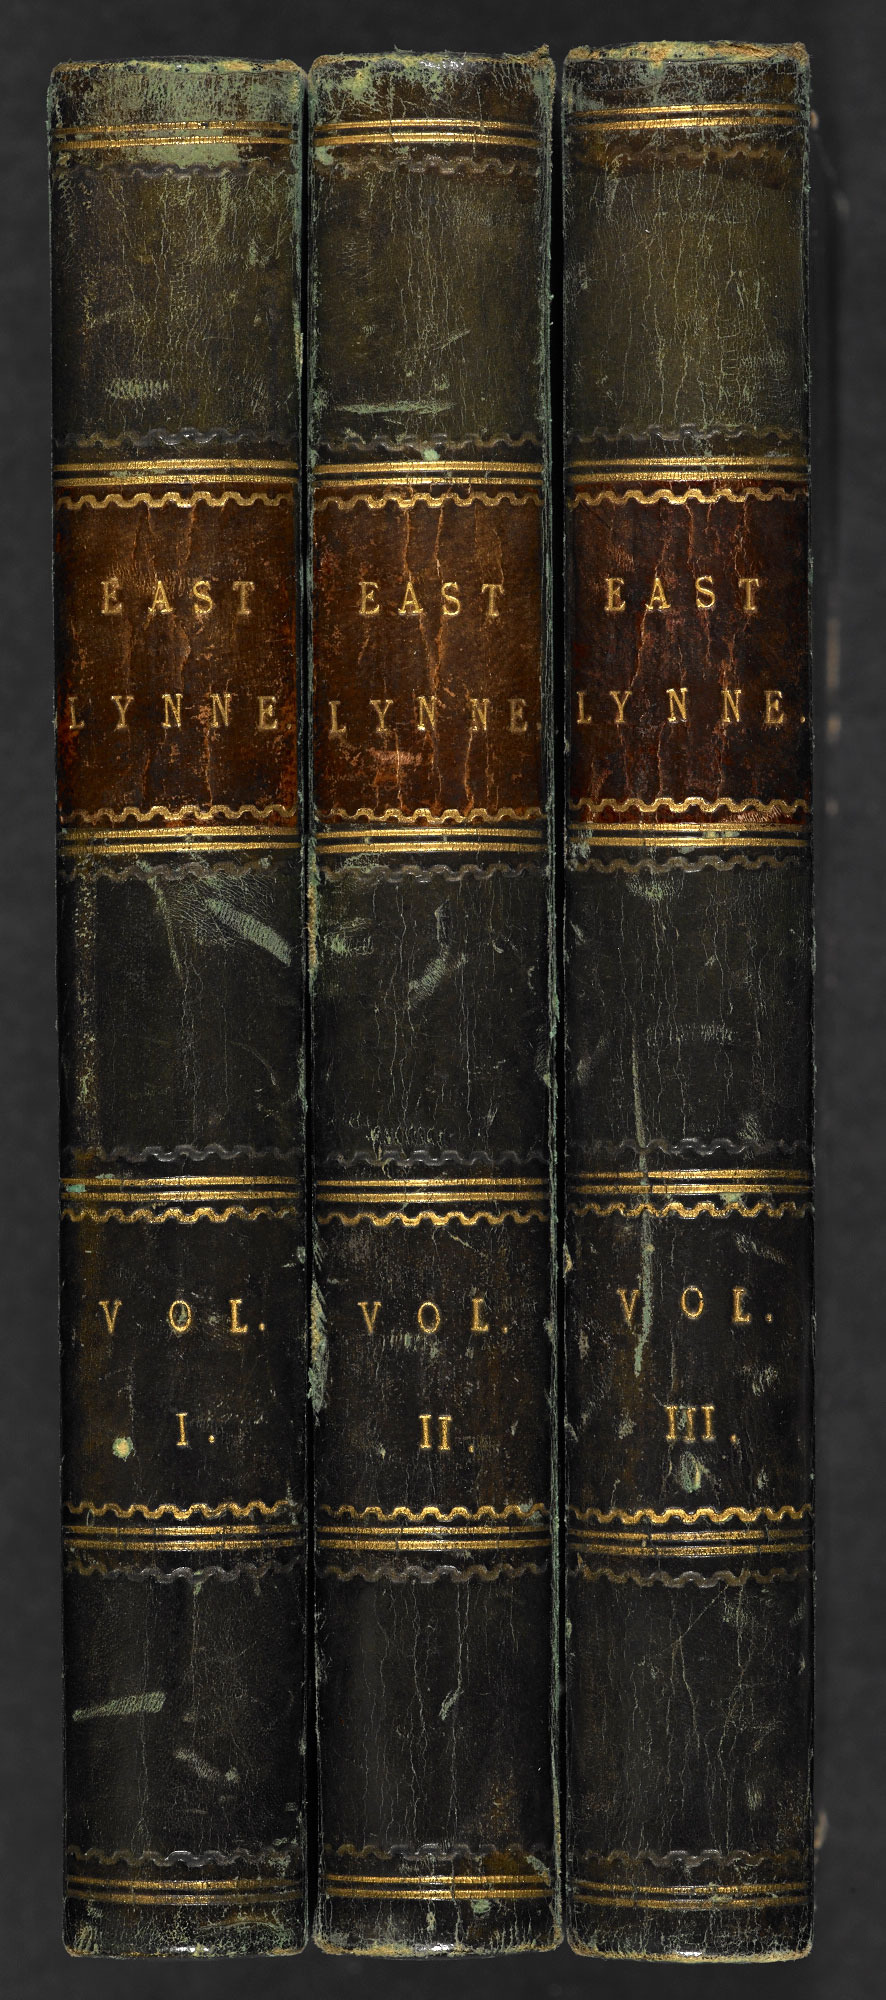 East Lynne, a 19th century sensation novel